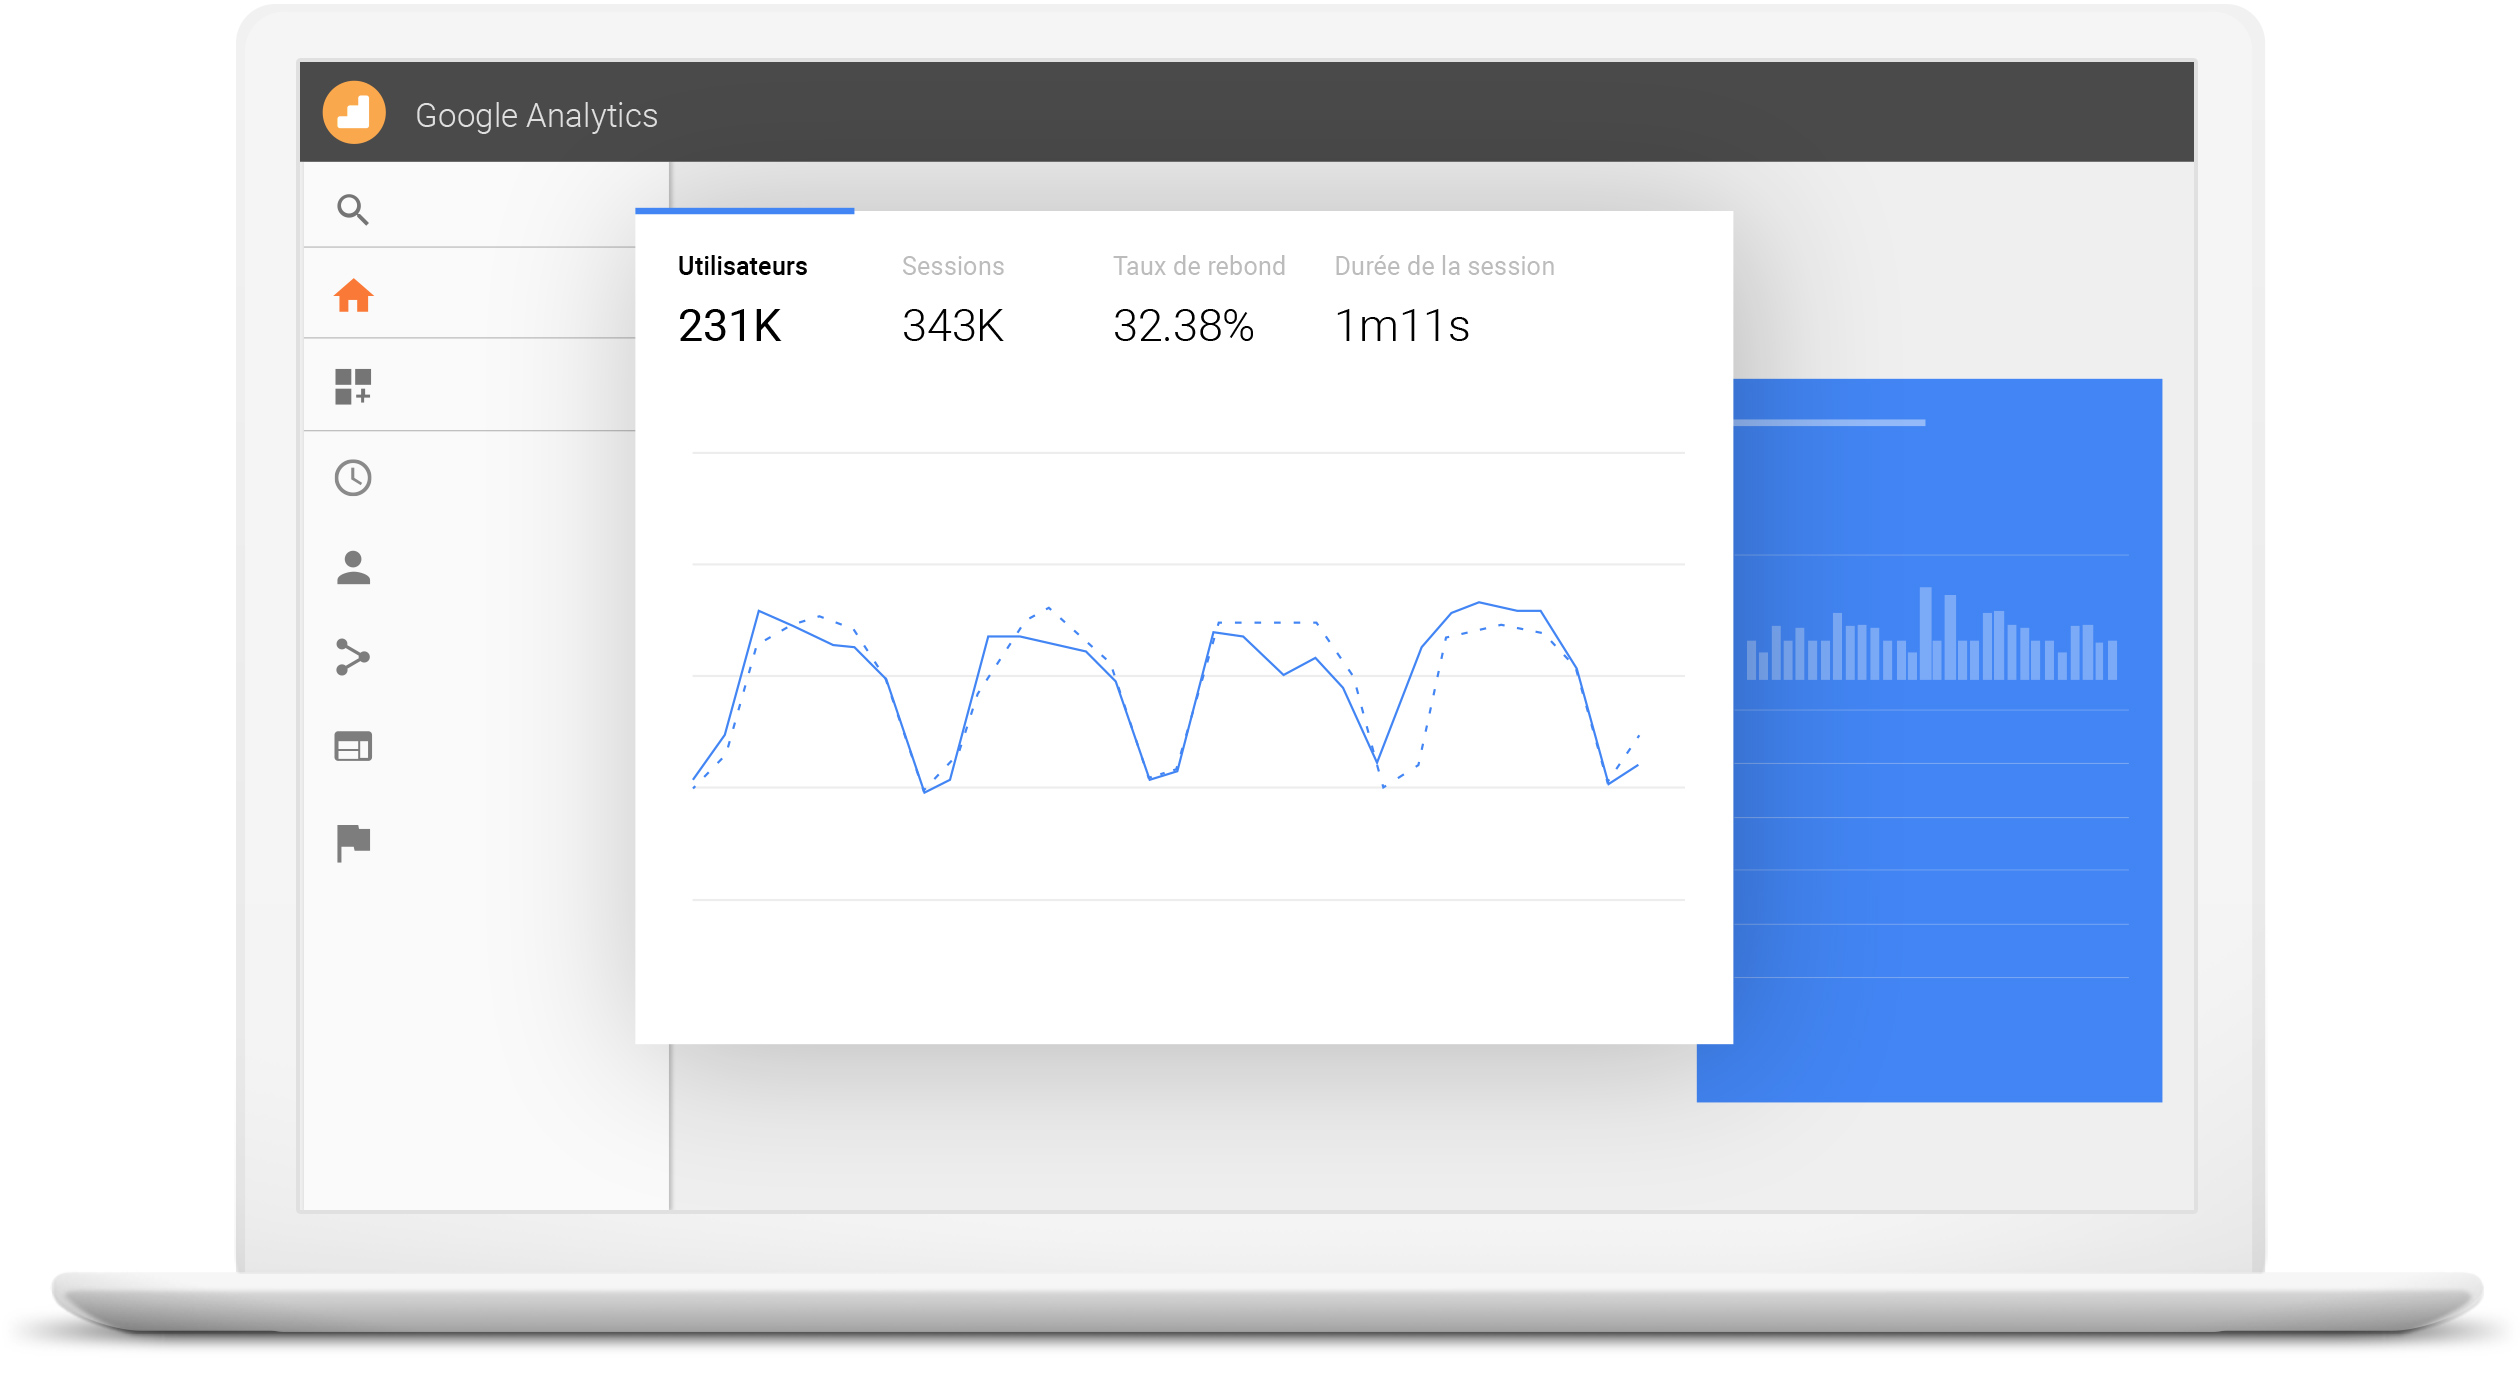 Un ordinateur portable affichant des résultats Google Analytics